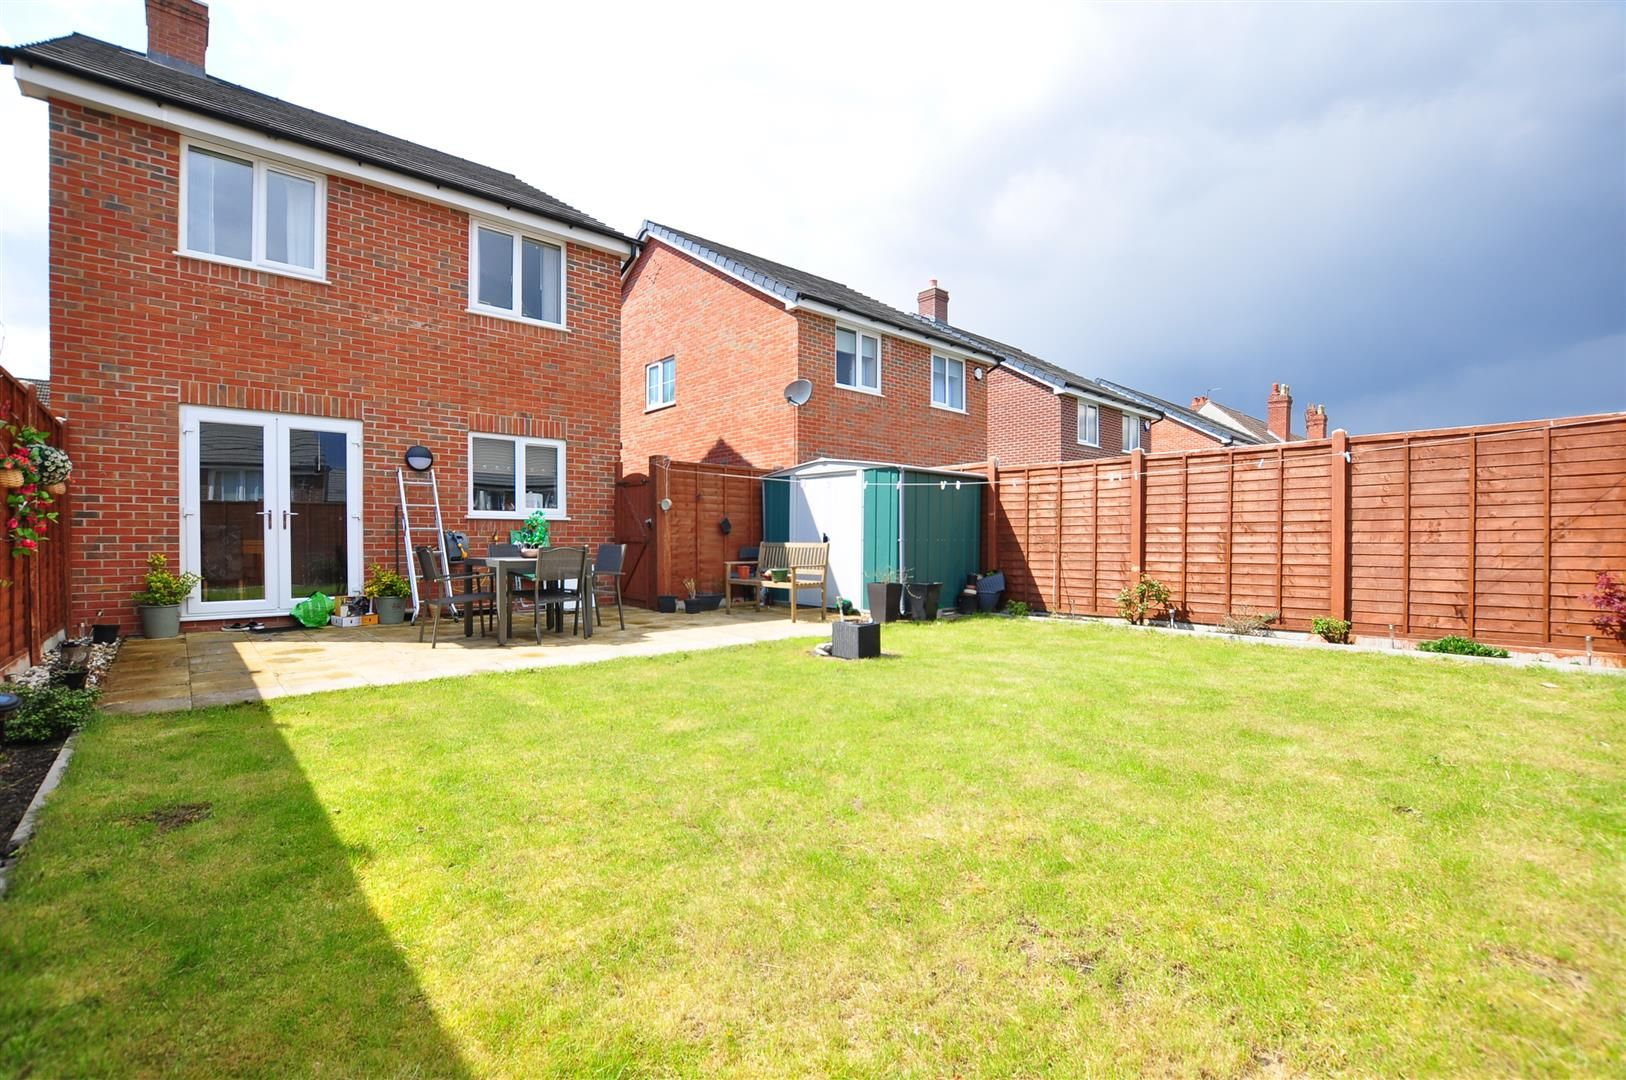 3 bed detached for sale 17